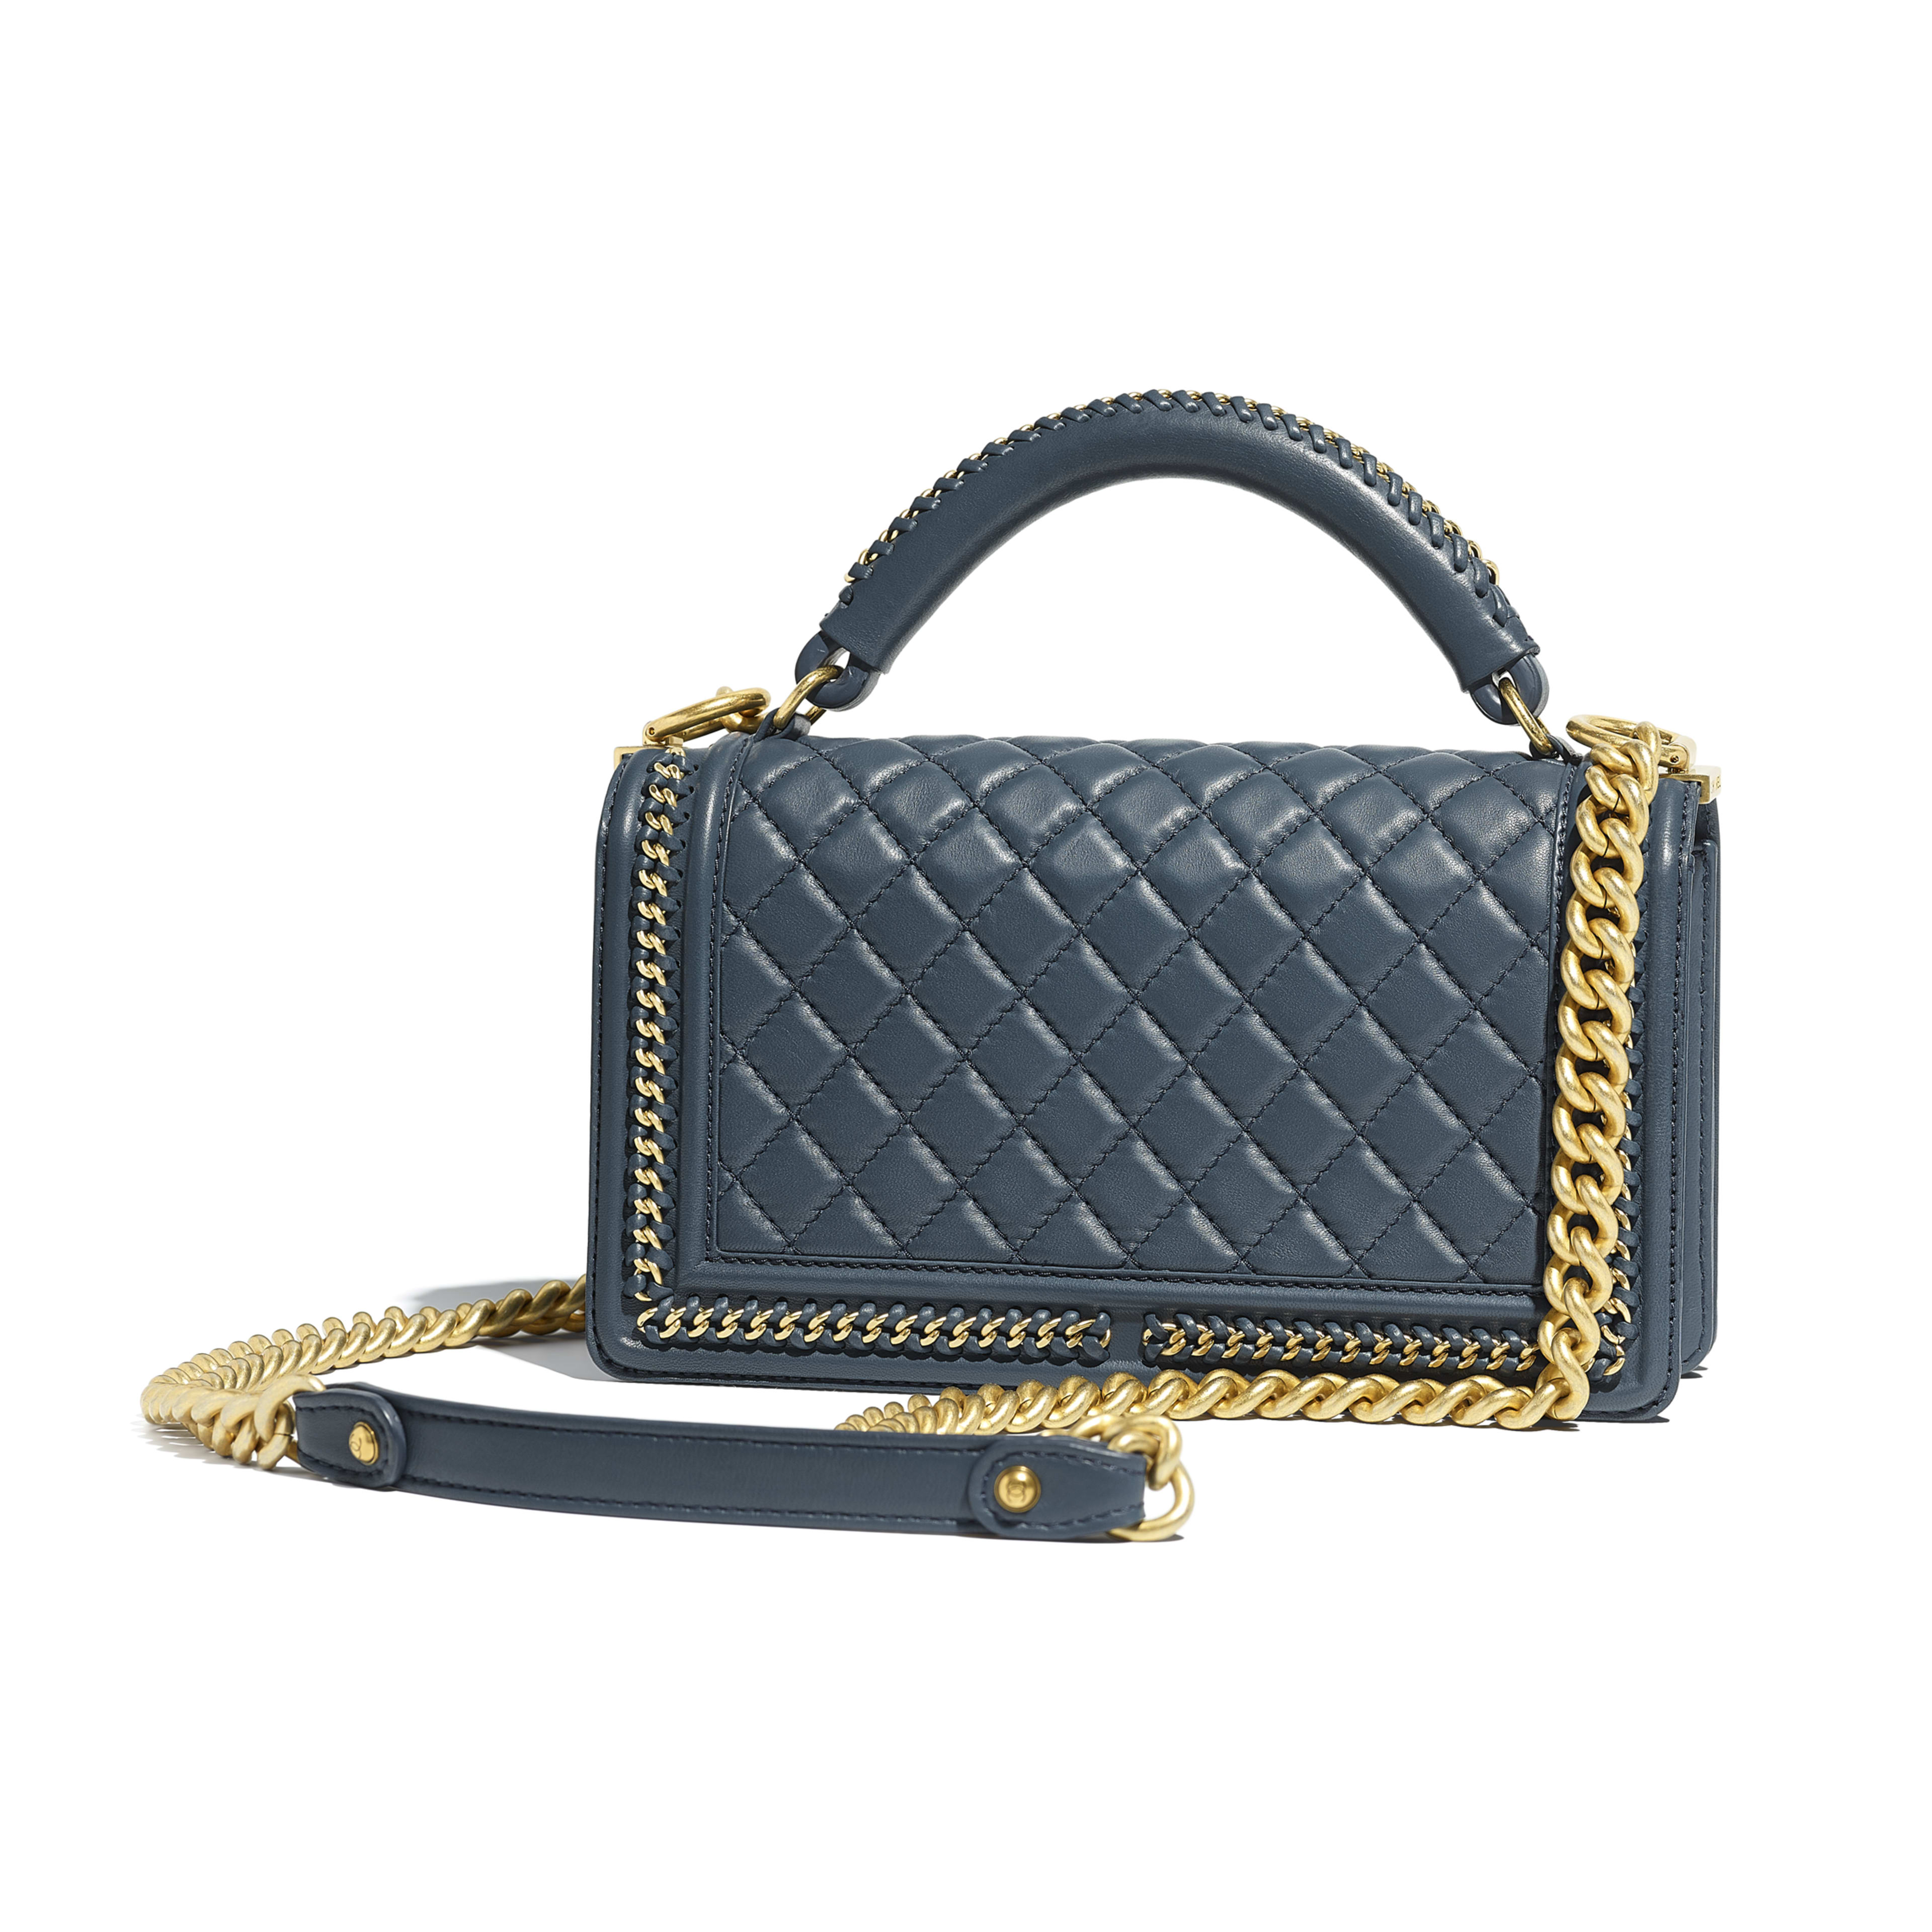 BOY CHANEL Flap Bag with Handle Calfskin & Gold-Tone Metal Blue -                                       view 2 - see full sized version